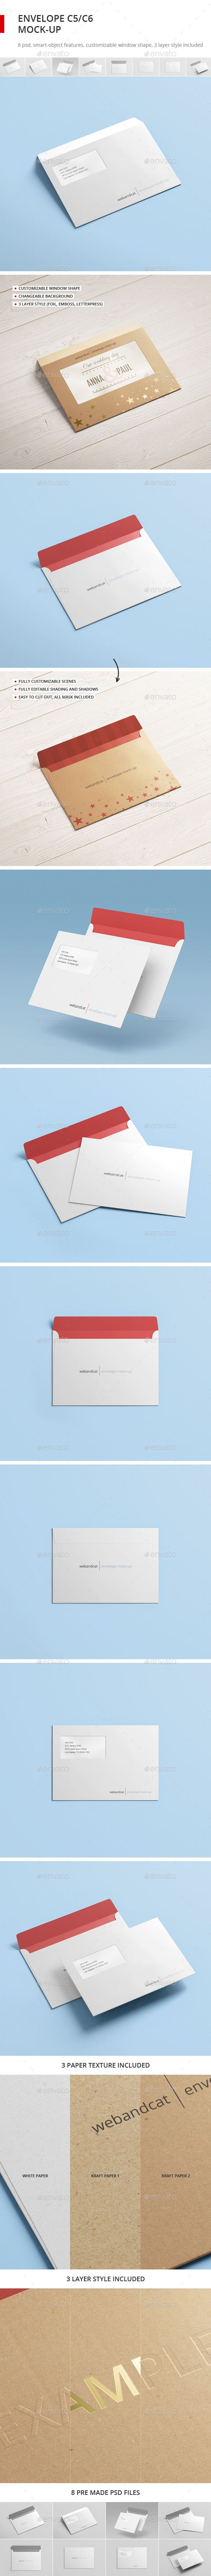 274 best images about mock up on pinterest stationery items